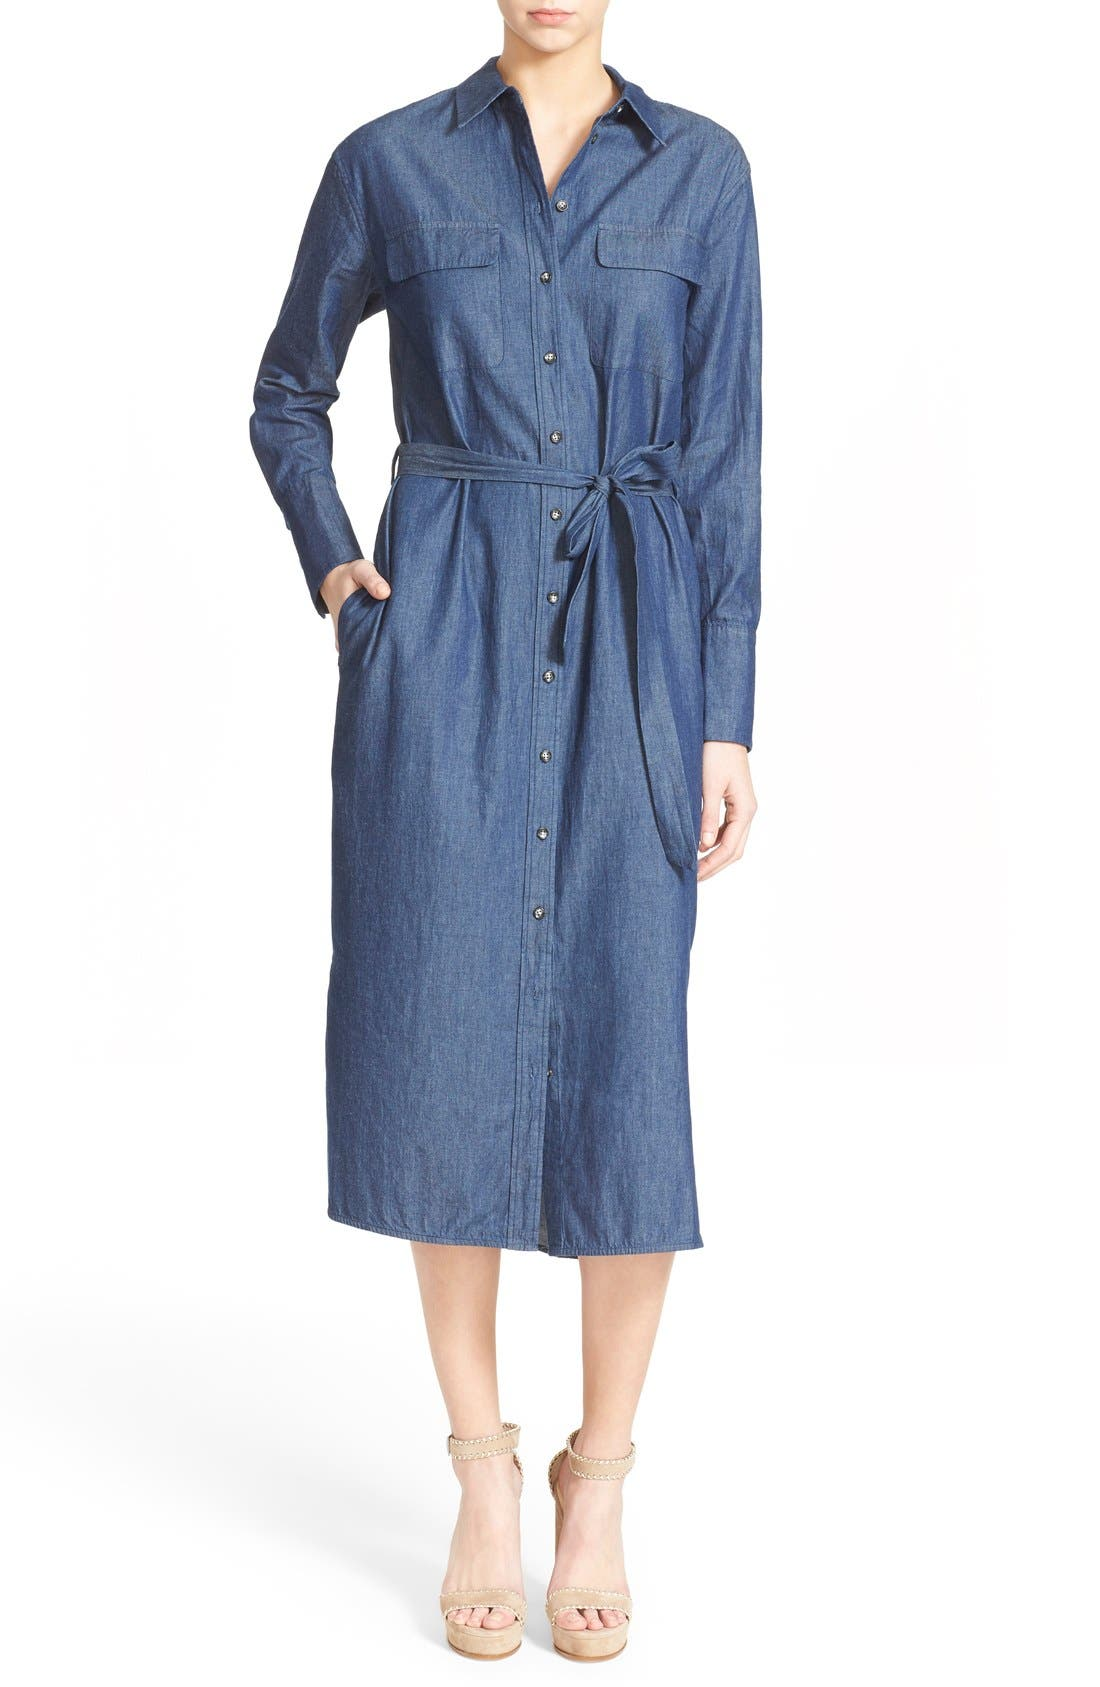 Alternate Image 1 Selected - Equipment 'Delany' Chambray Cotton Shirtdress